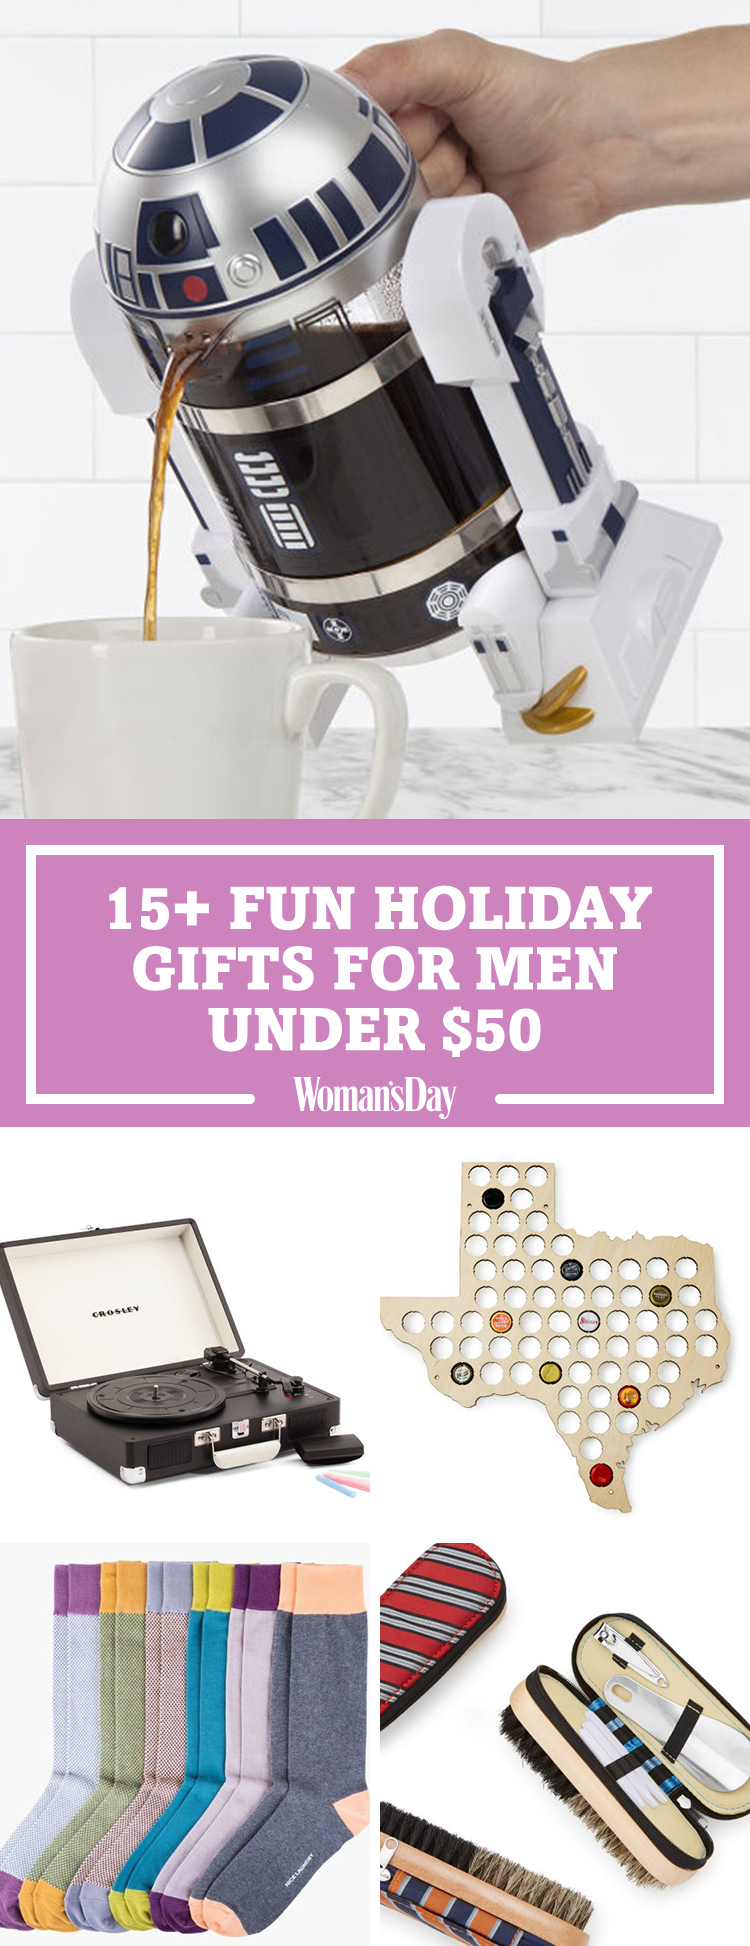 35 Thoughtful Valentine's Day Gifts For the Man Who